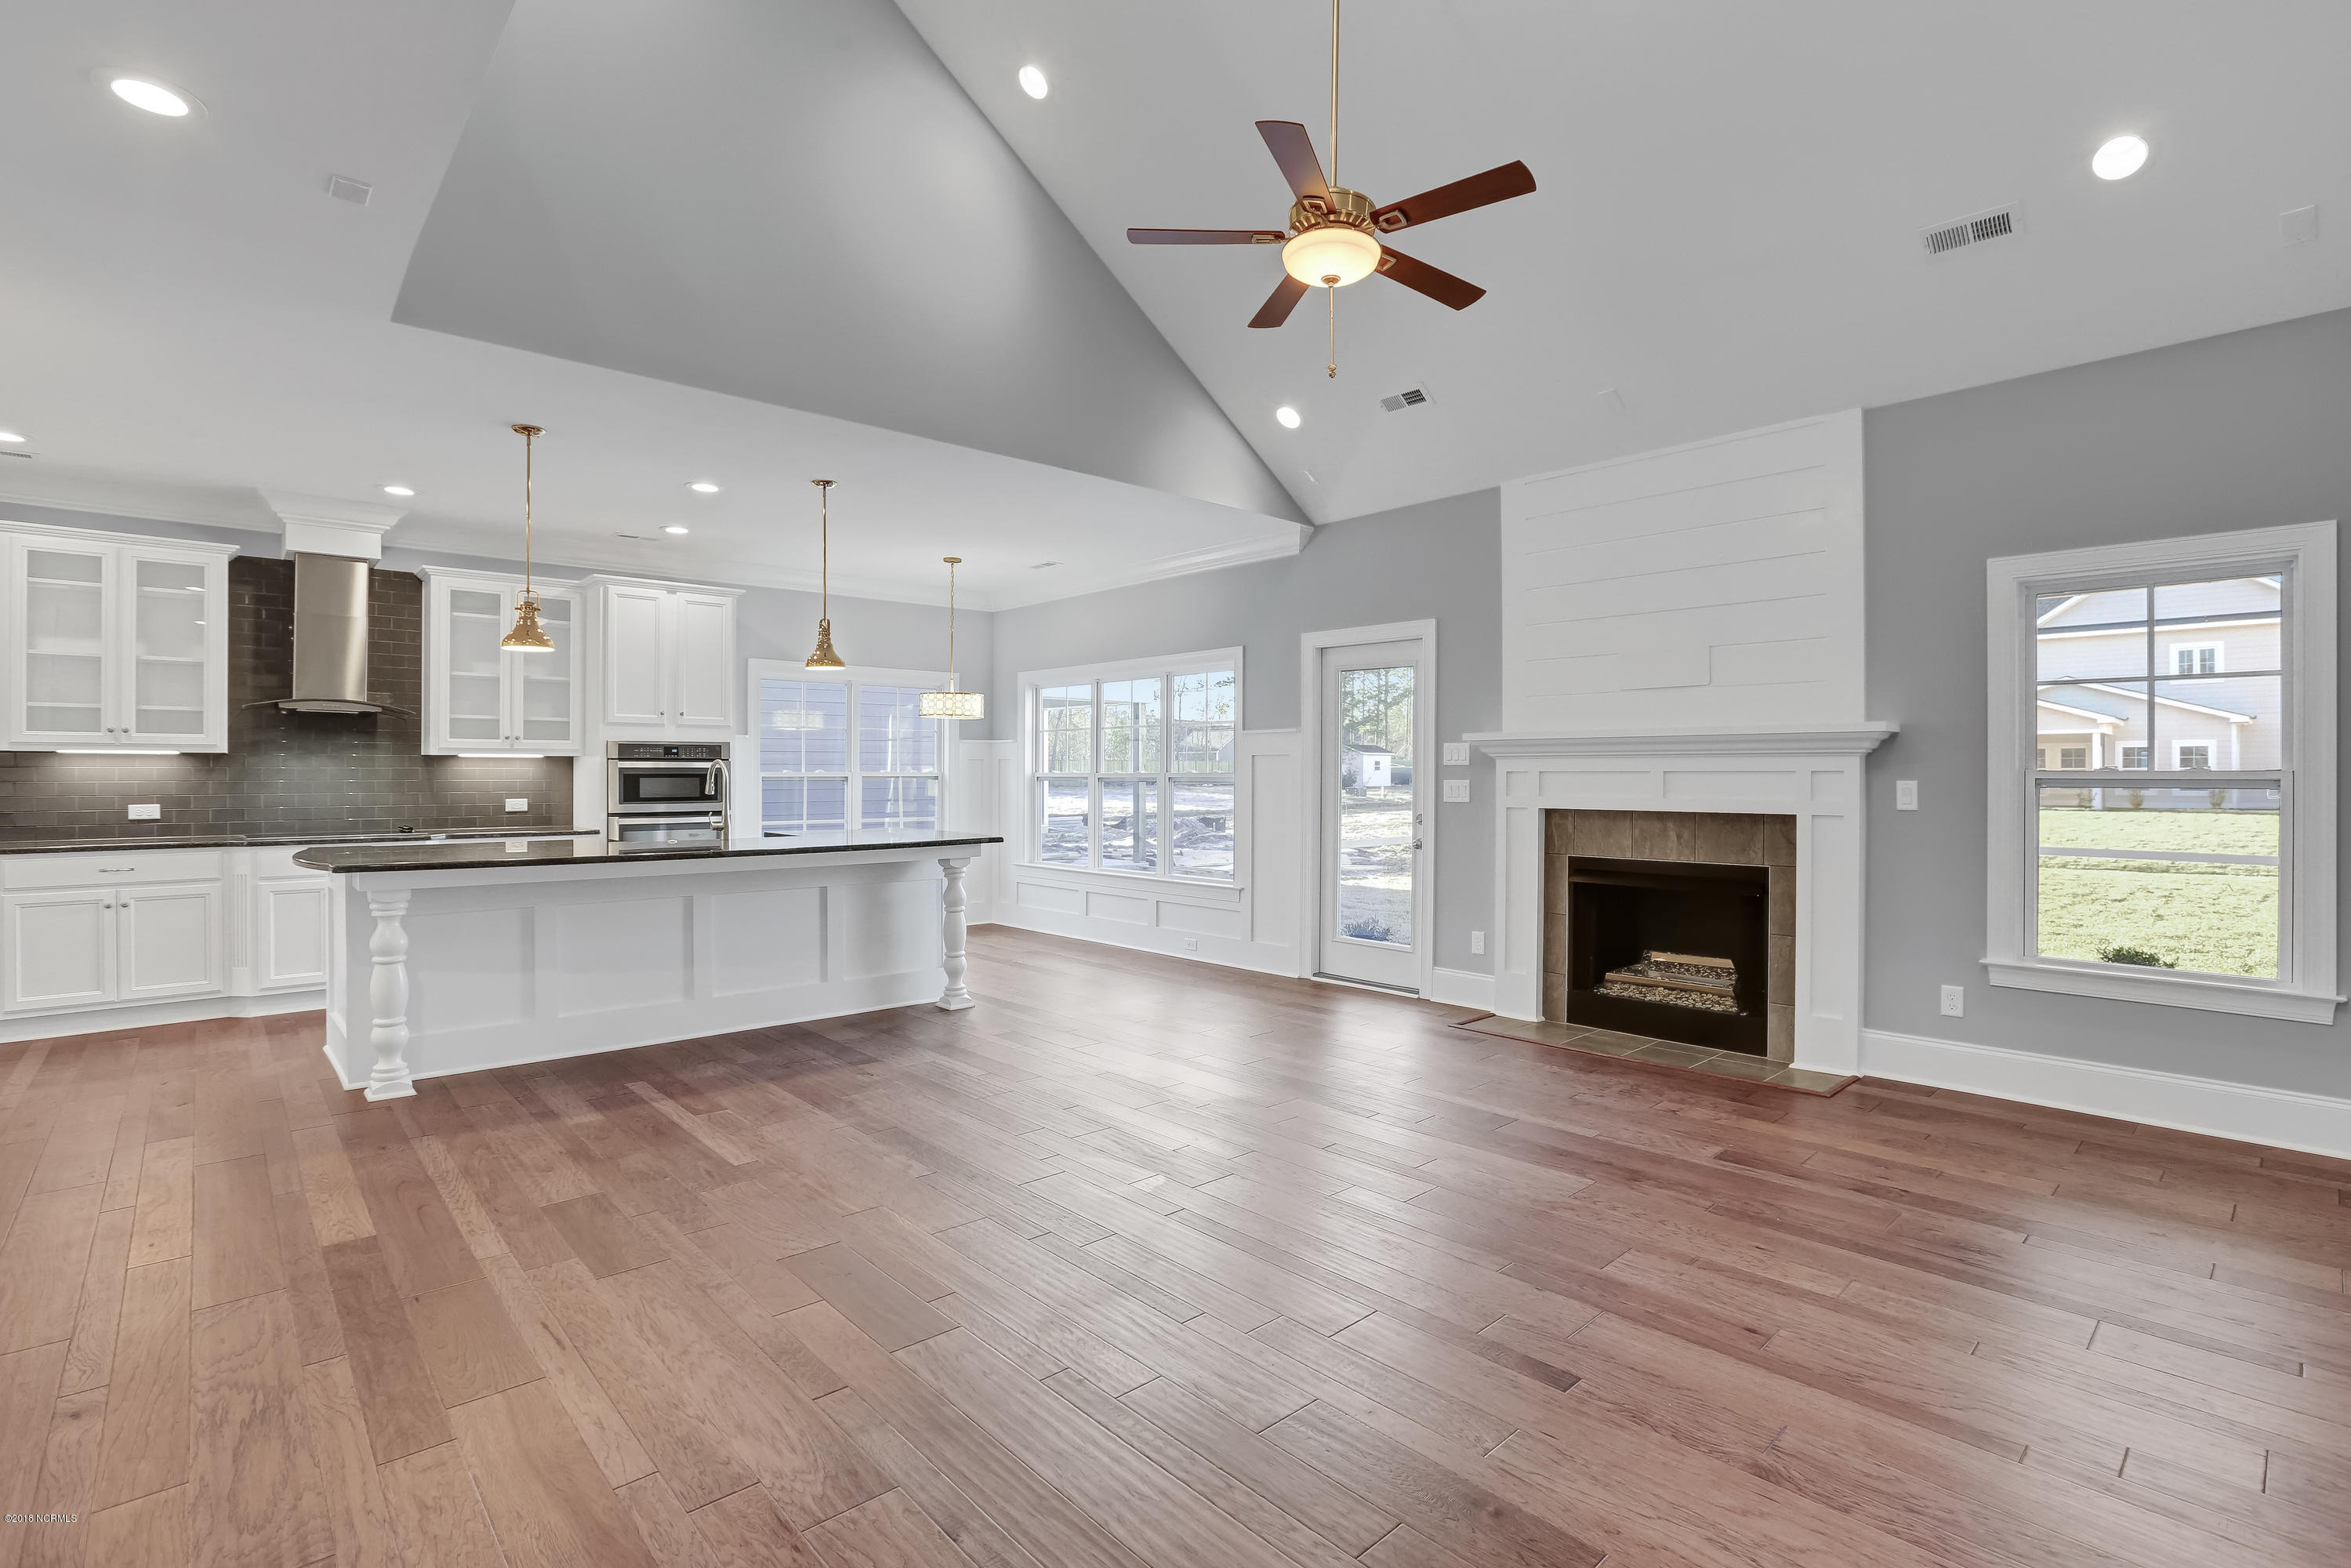 hardwood flooring company west hampstead of search sold buy the sea realty pertaining to the easton is a 3 bed 2 5 bath charmer with jack n jill setup on the 2nd floor this home has many custom level features such as a formal dining room w